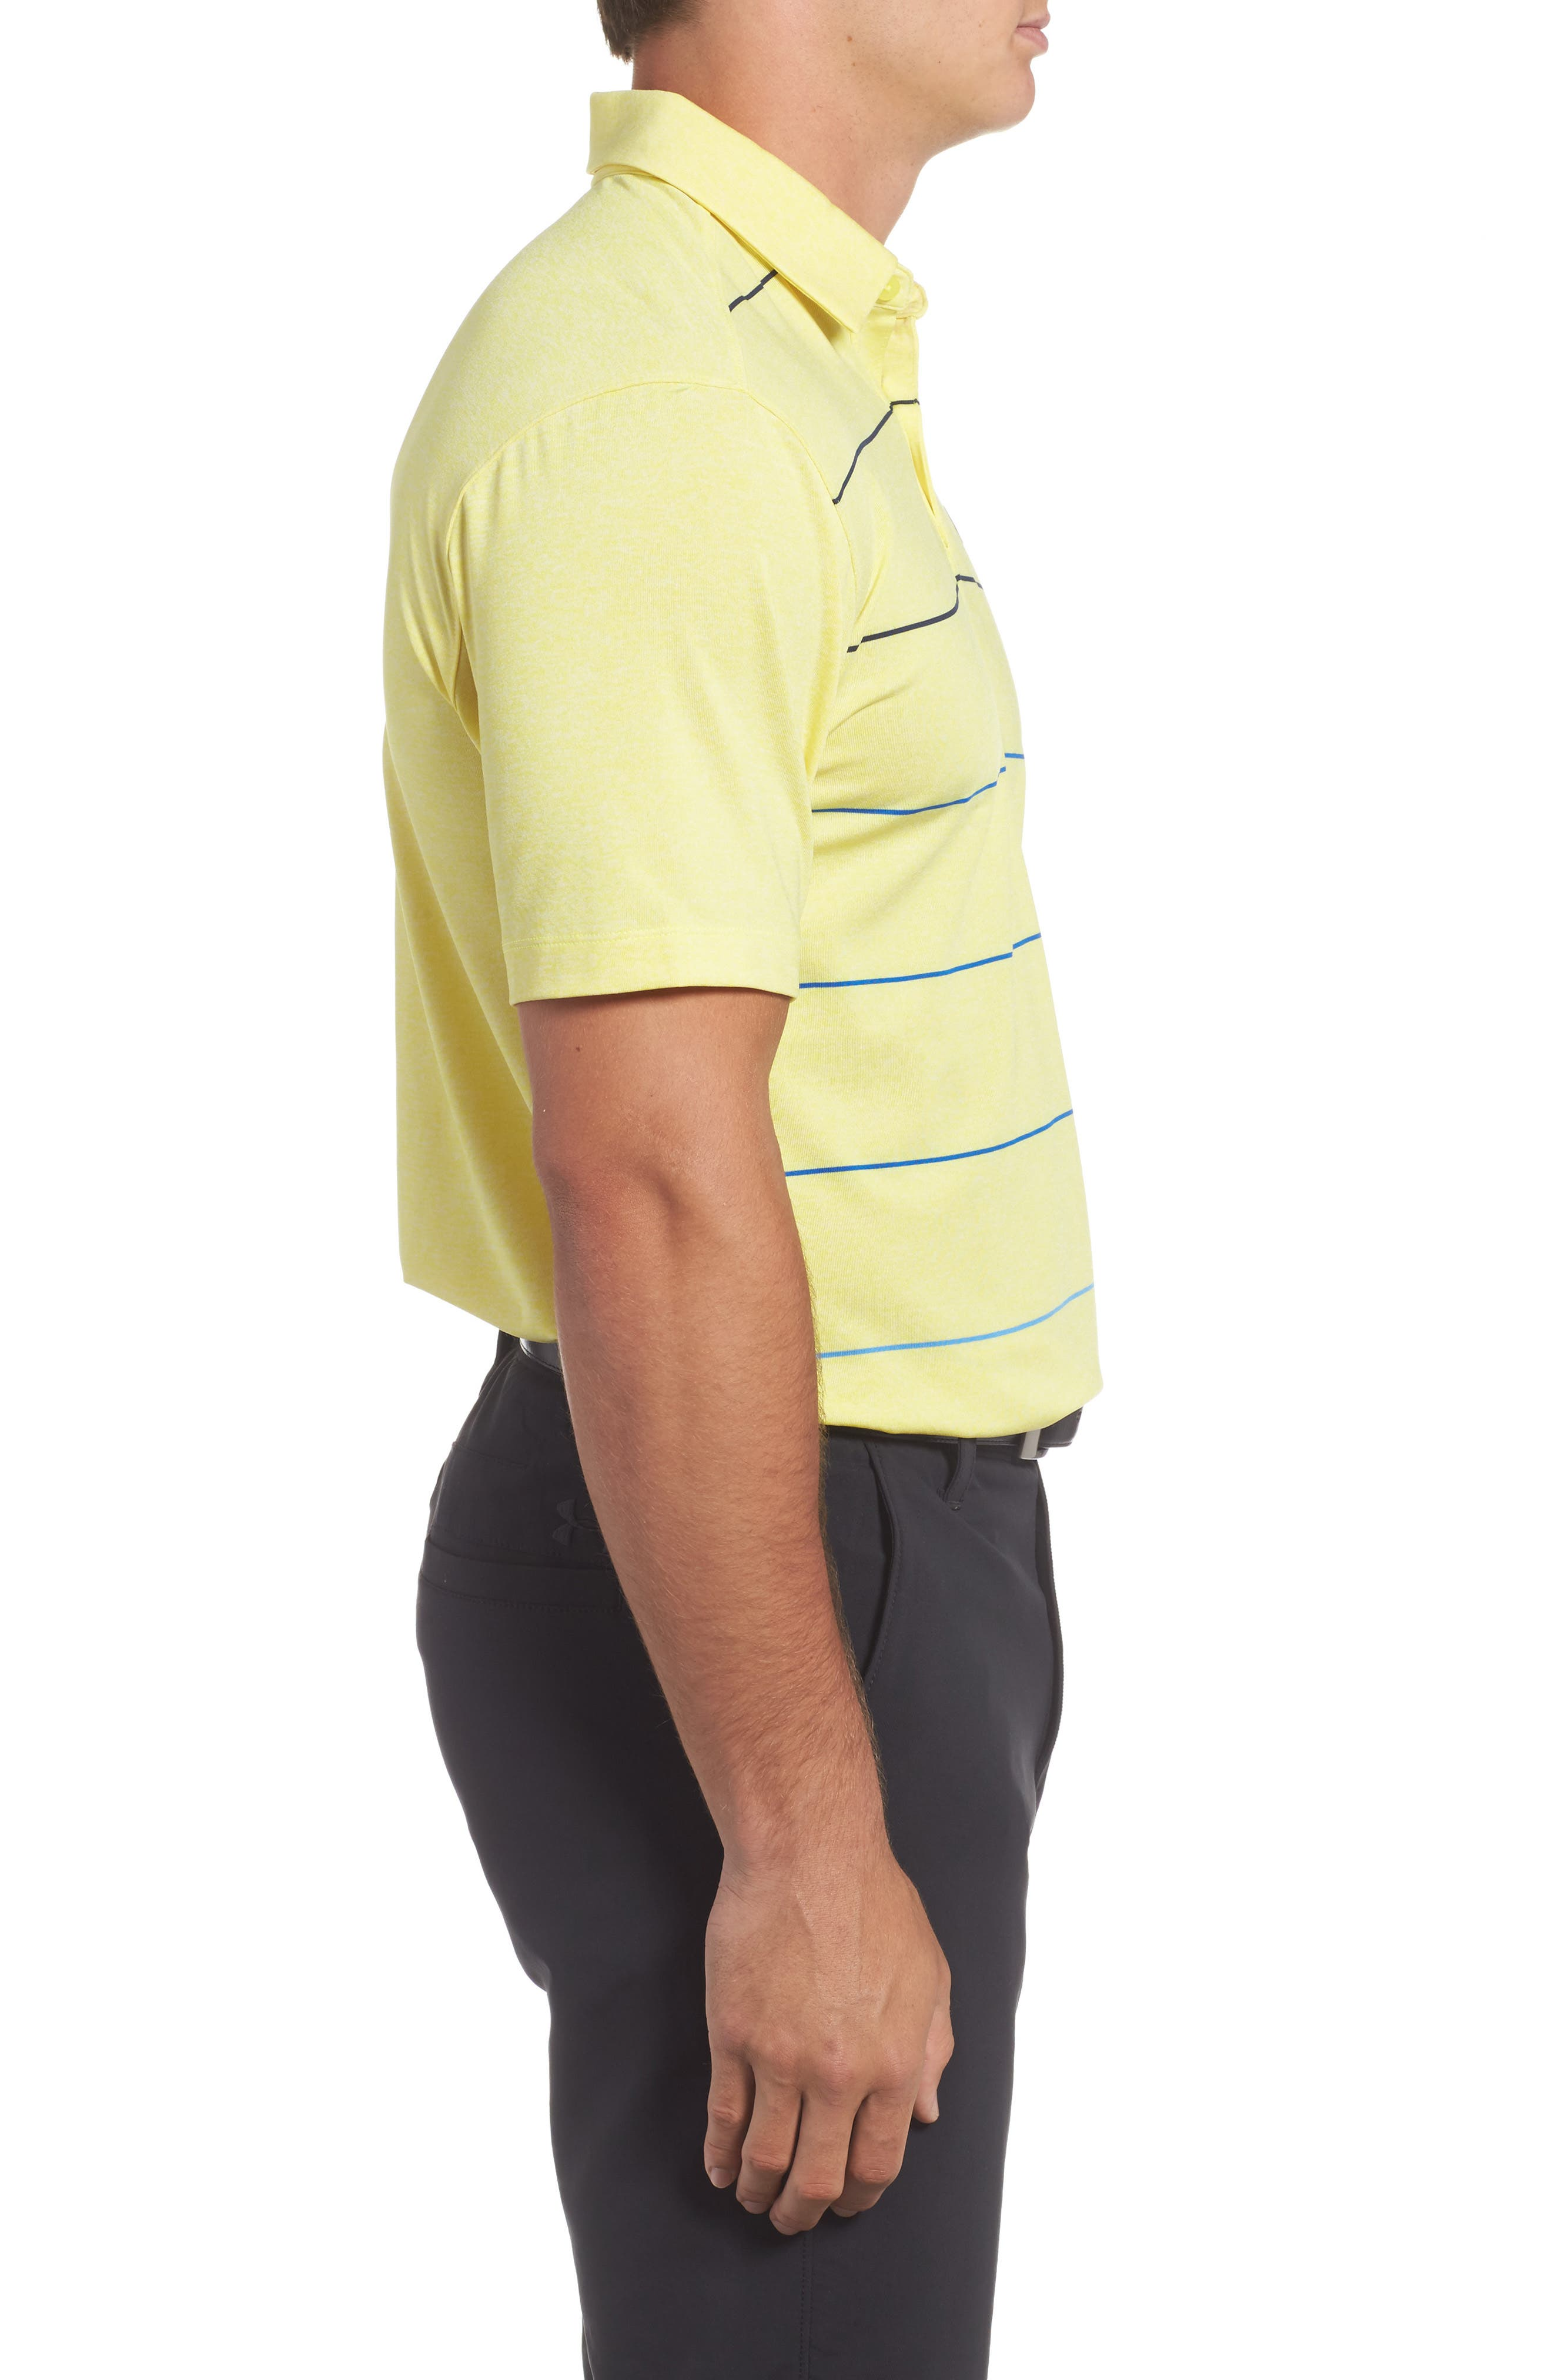 CoolSwitch Regular Fit Polo,                             Alternate thumbnail 4, color,                             Tokyo Lemon / Steel